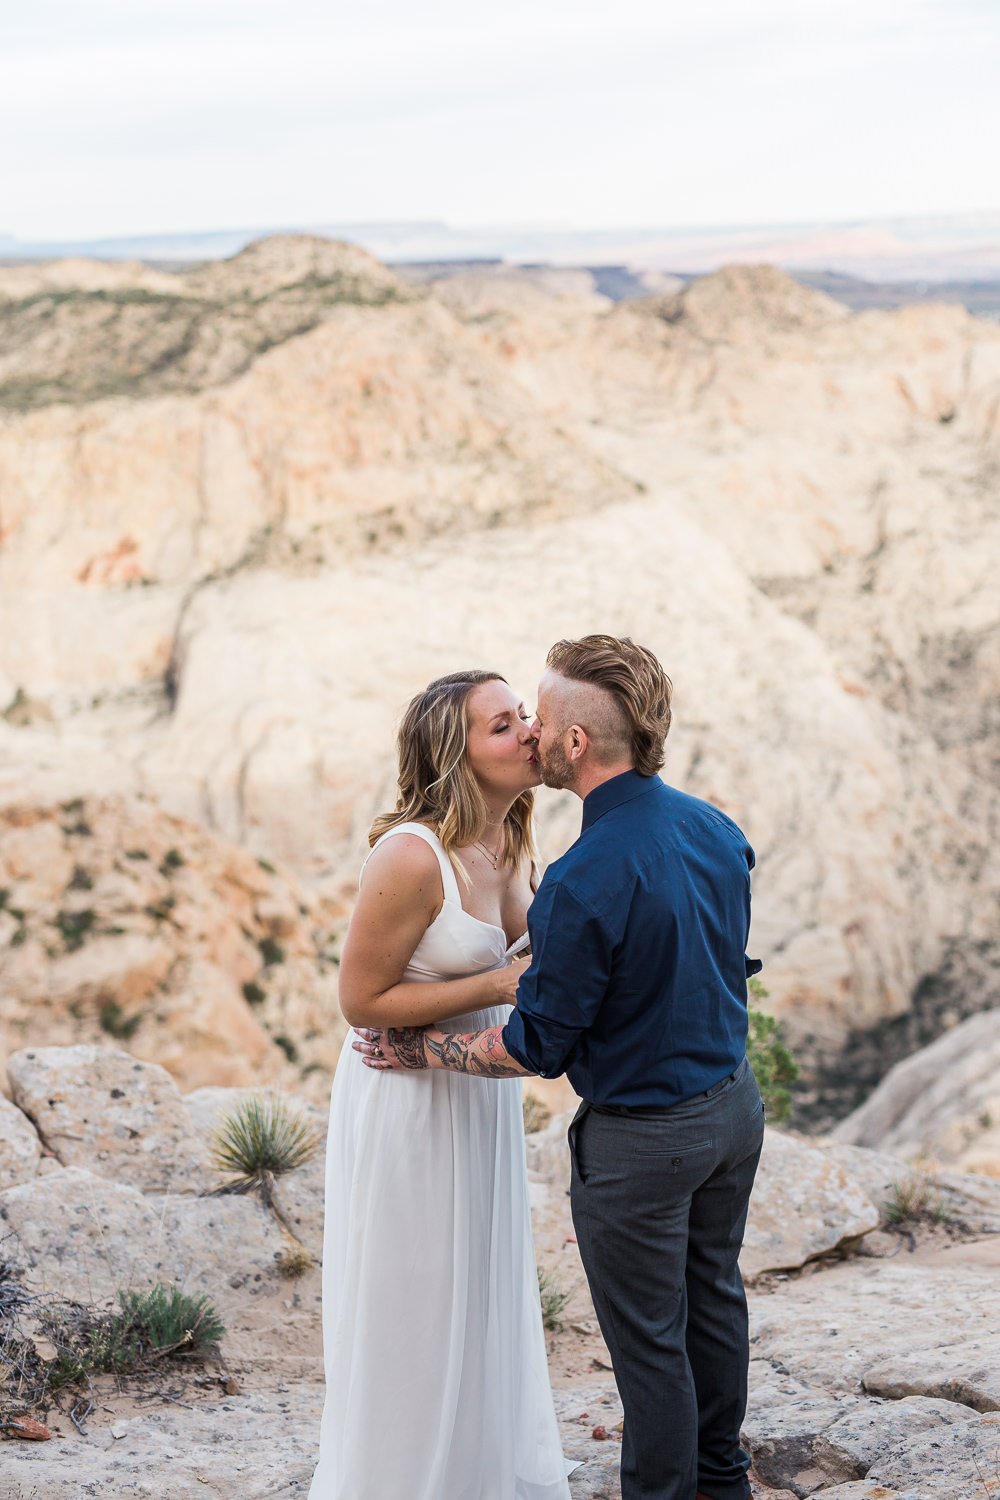 Couple renews their vows on an epic cliffside view